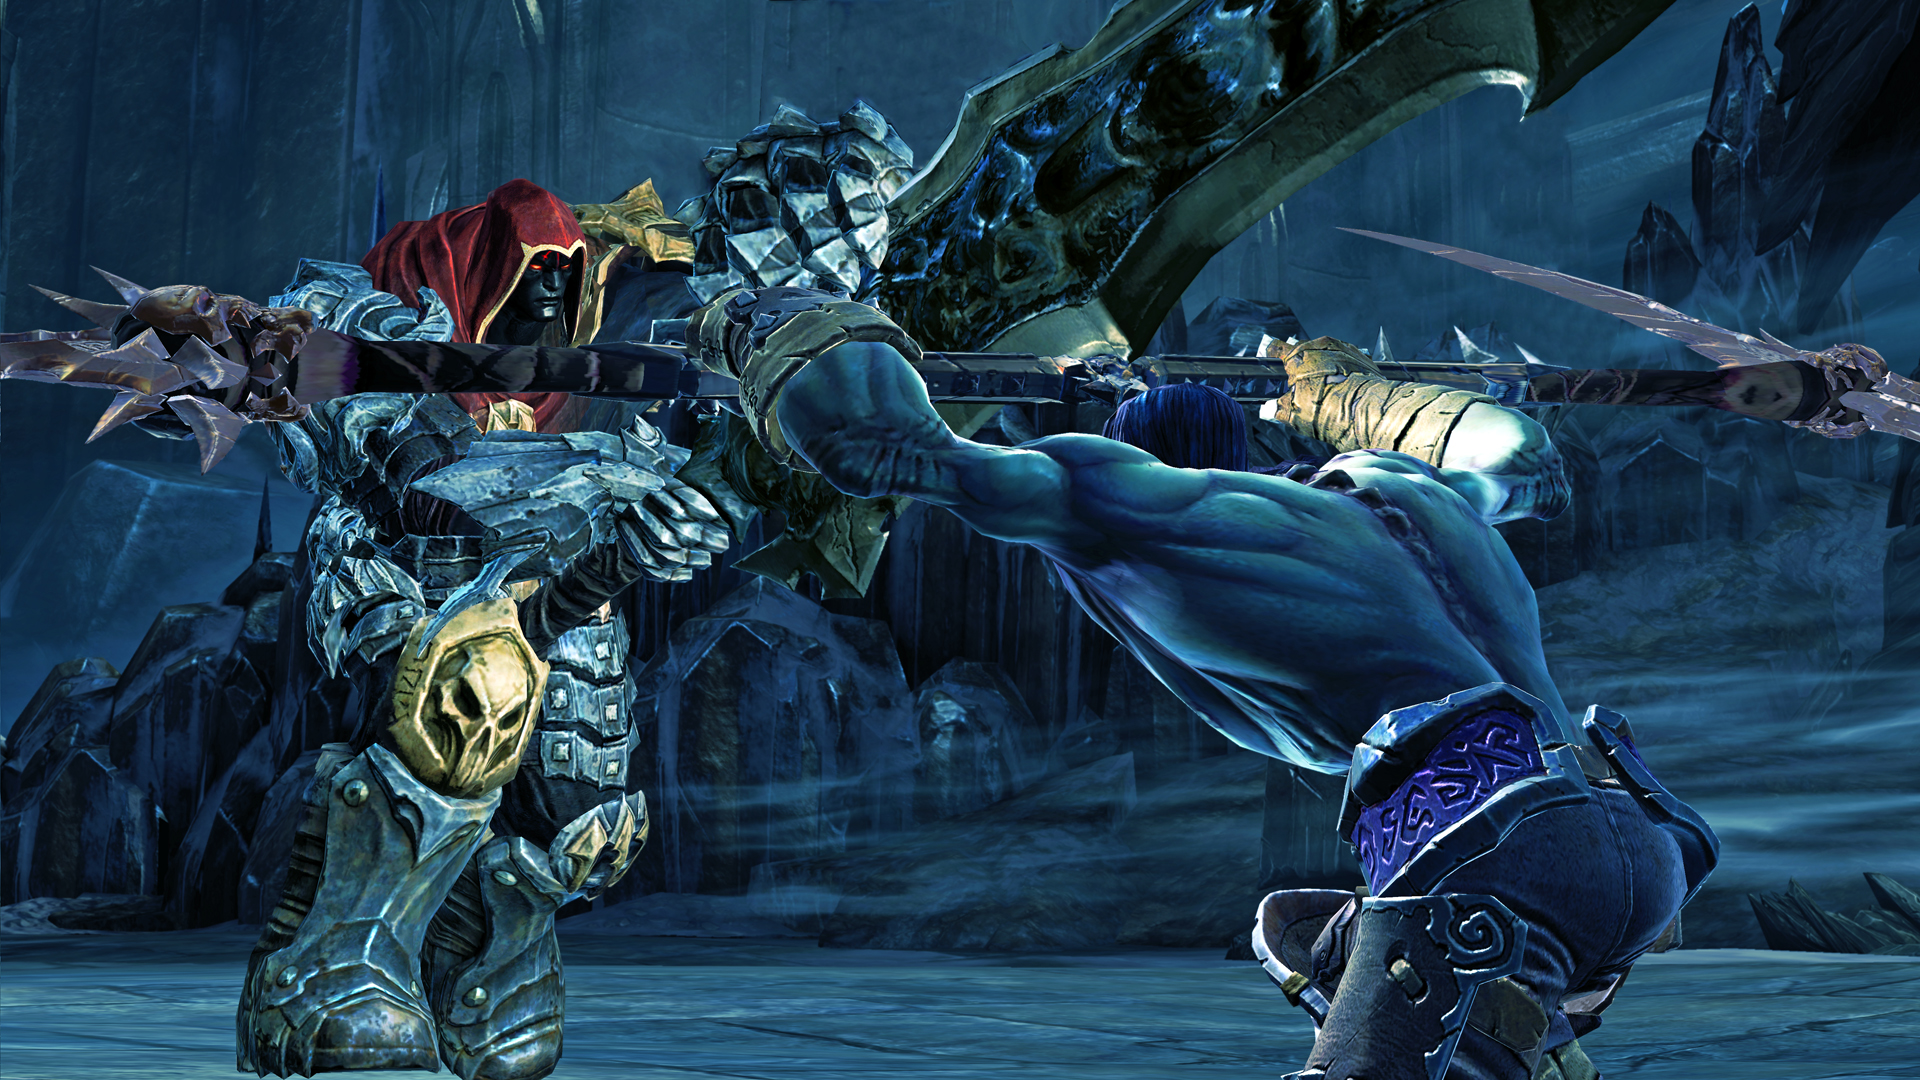 Darksiders Video Game Wallpaper Wallpaper For iPad HD Wallpapers